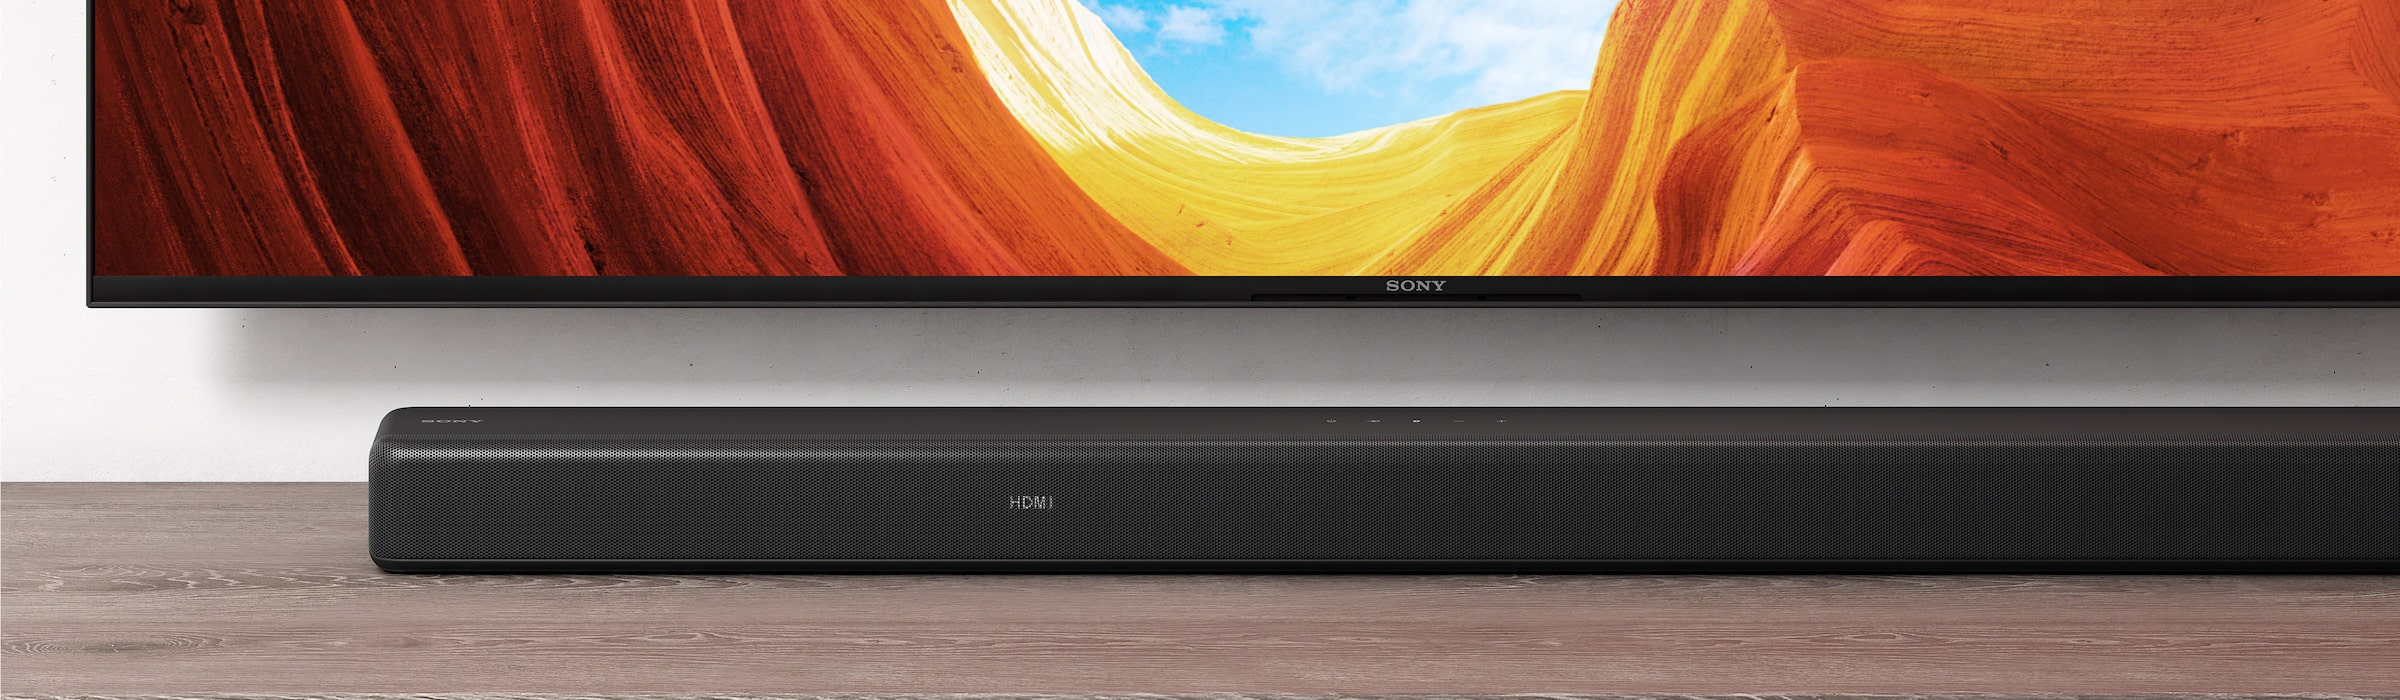 Sony Bravia TV ile HT-G700 sound bar